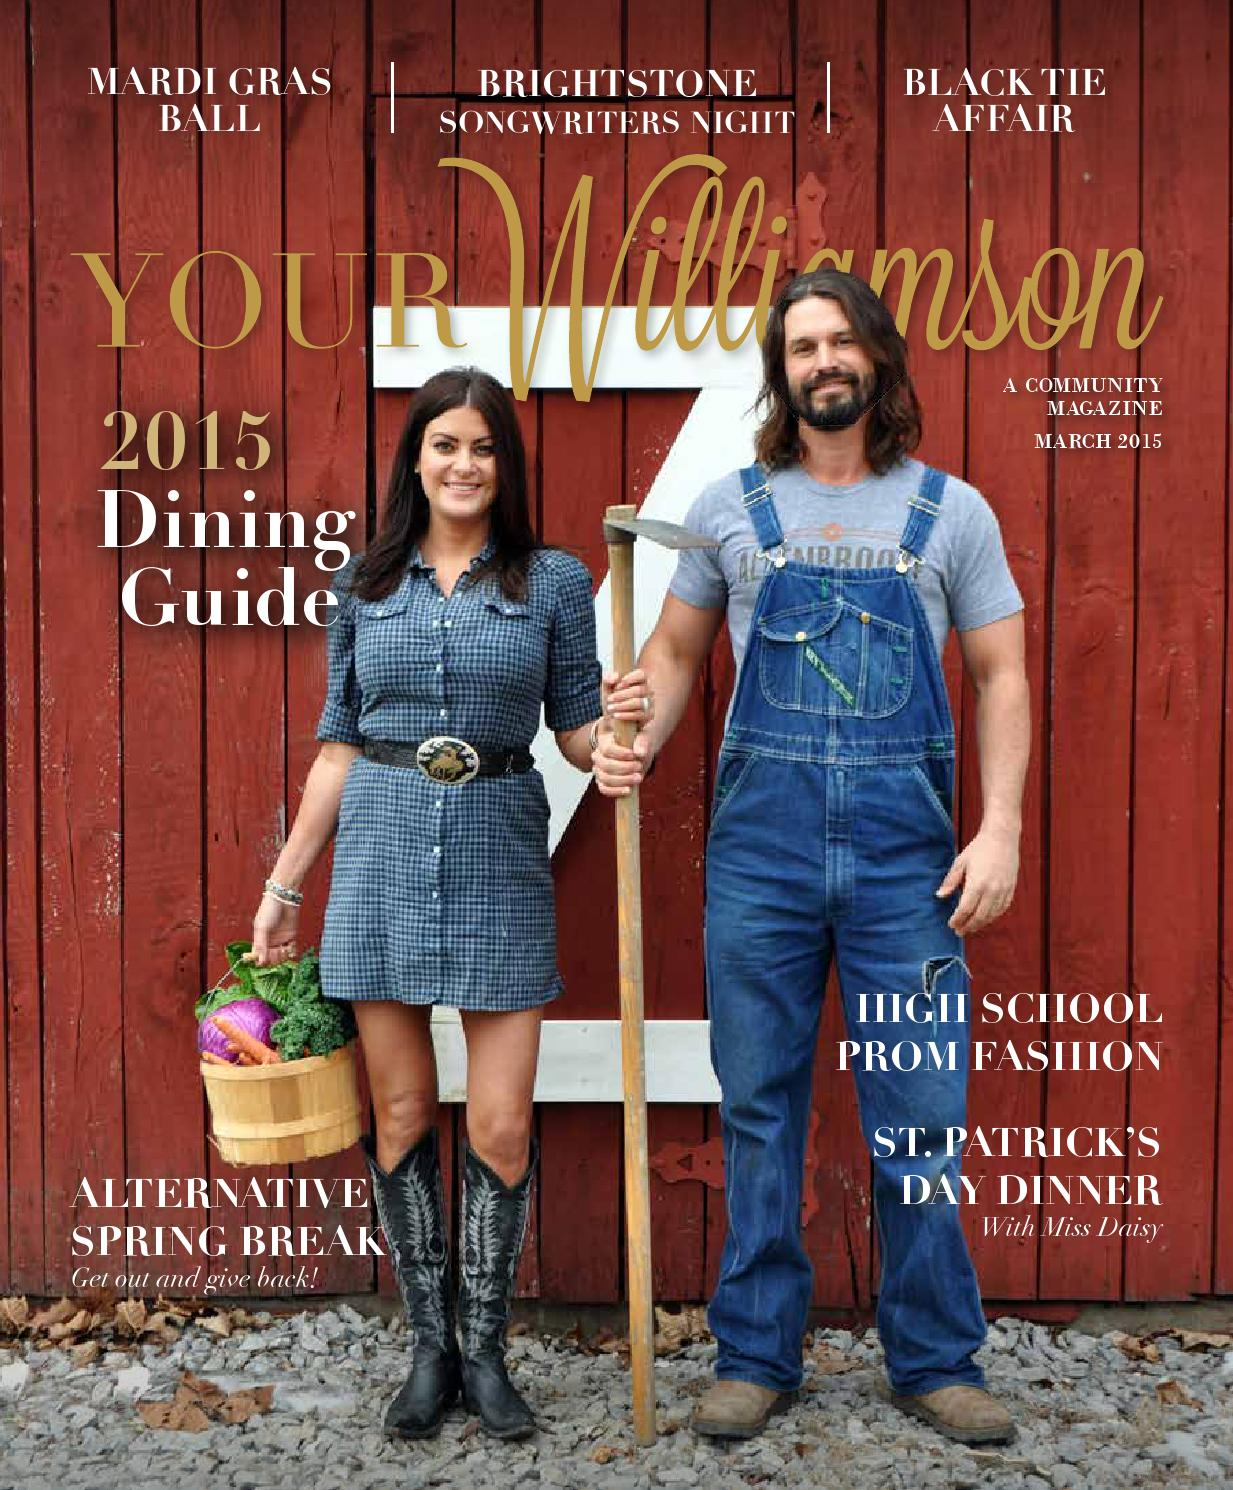 March 2015 by Robertson Media Group | Your Williamson | Your